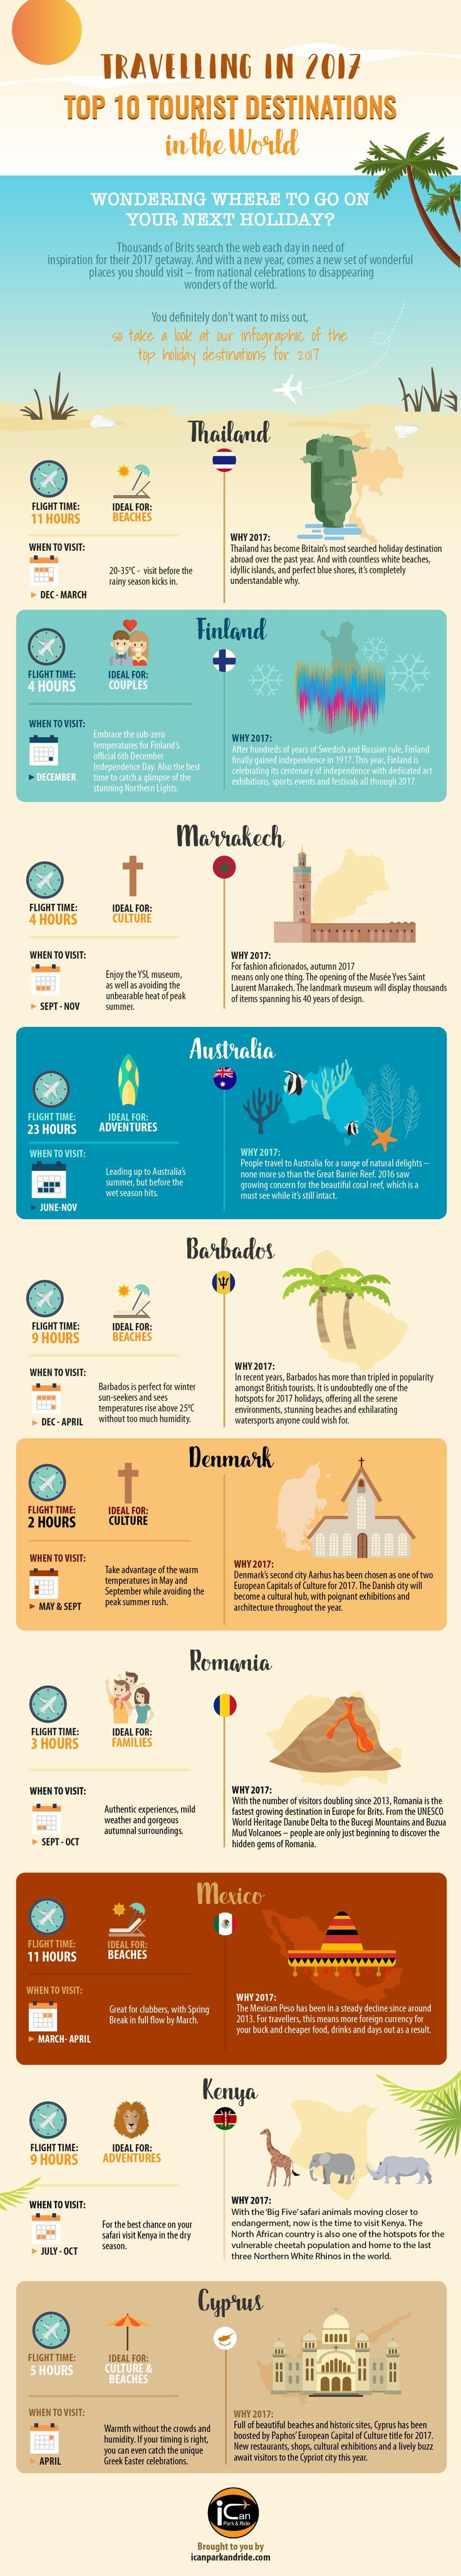 Travelling in 2017: Top 10 Tourist Destinations in the World #Infographic #Travel